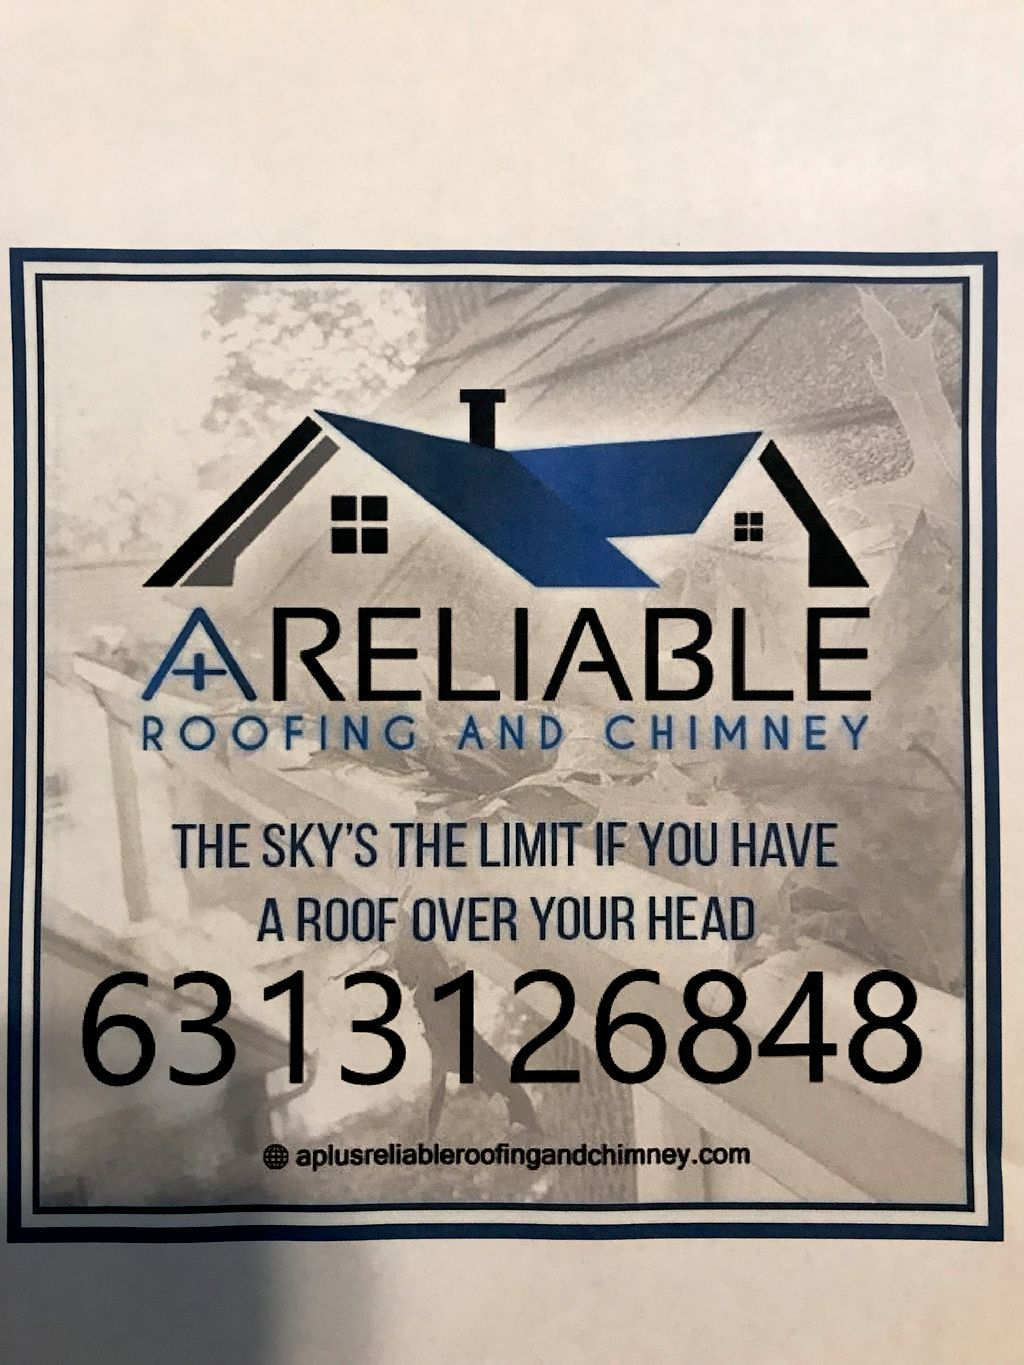 A+reliable roofing chimney siding